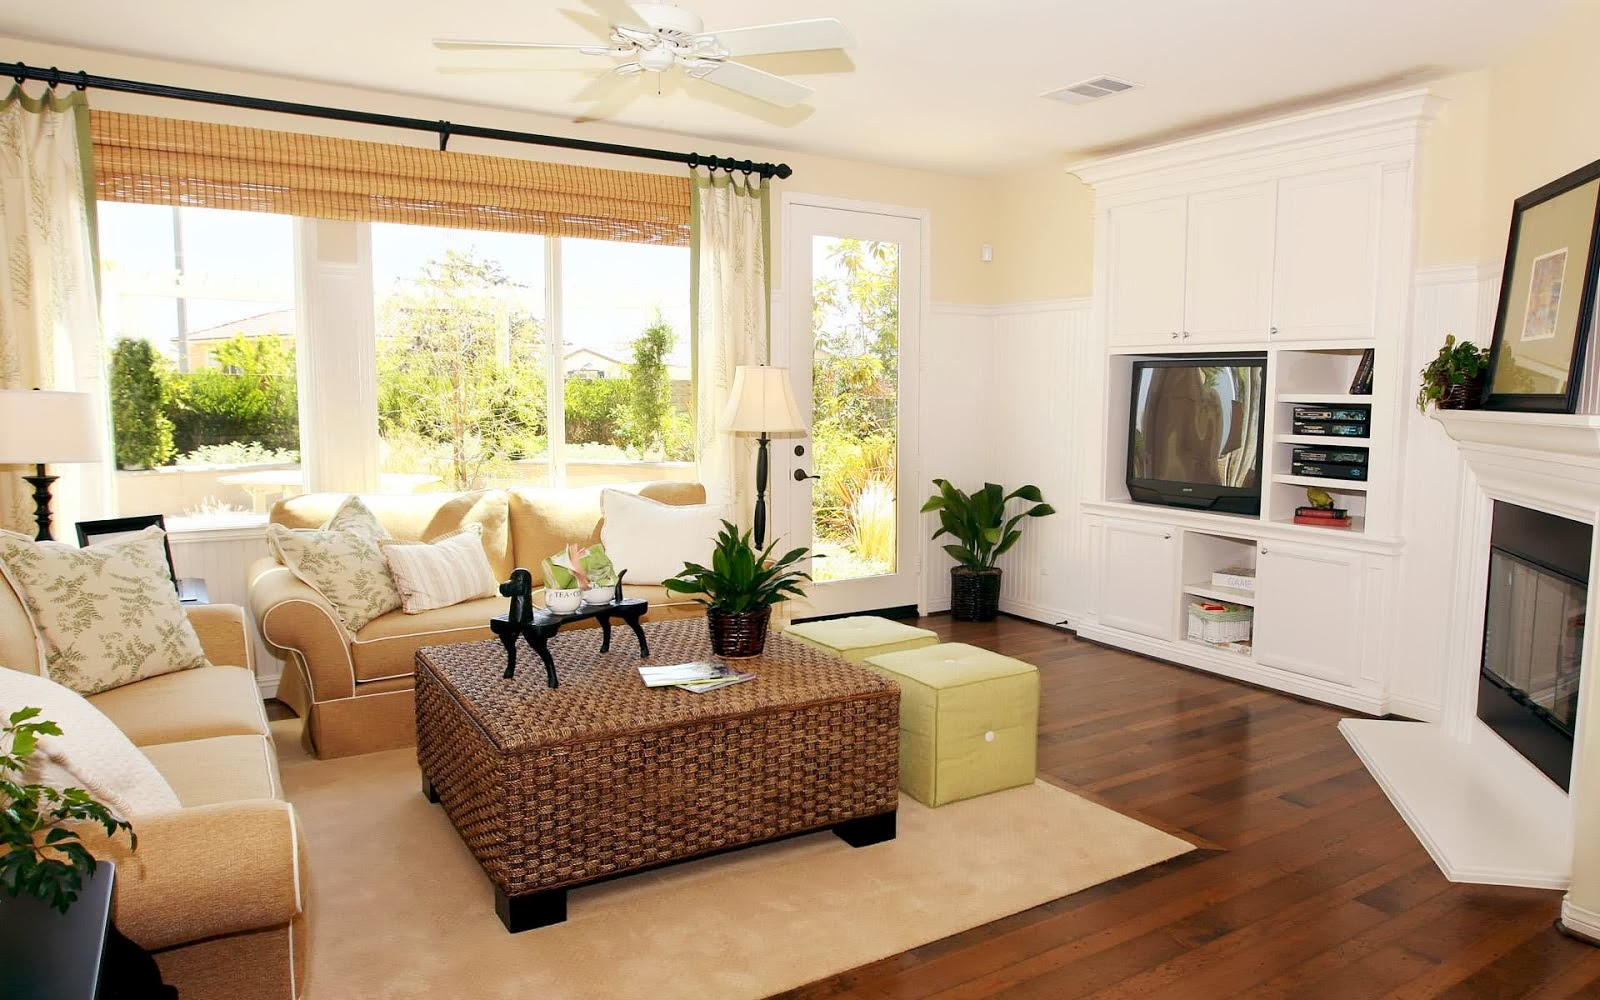 Lower class living room - Indian Lower Middle Class Home Interiors Middle Class Indian Home Interior